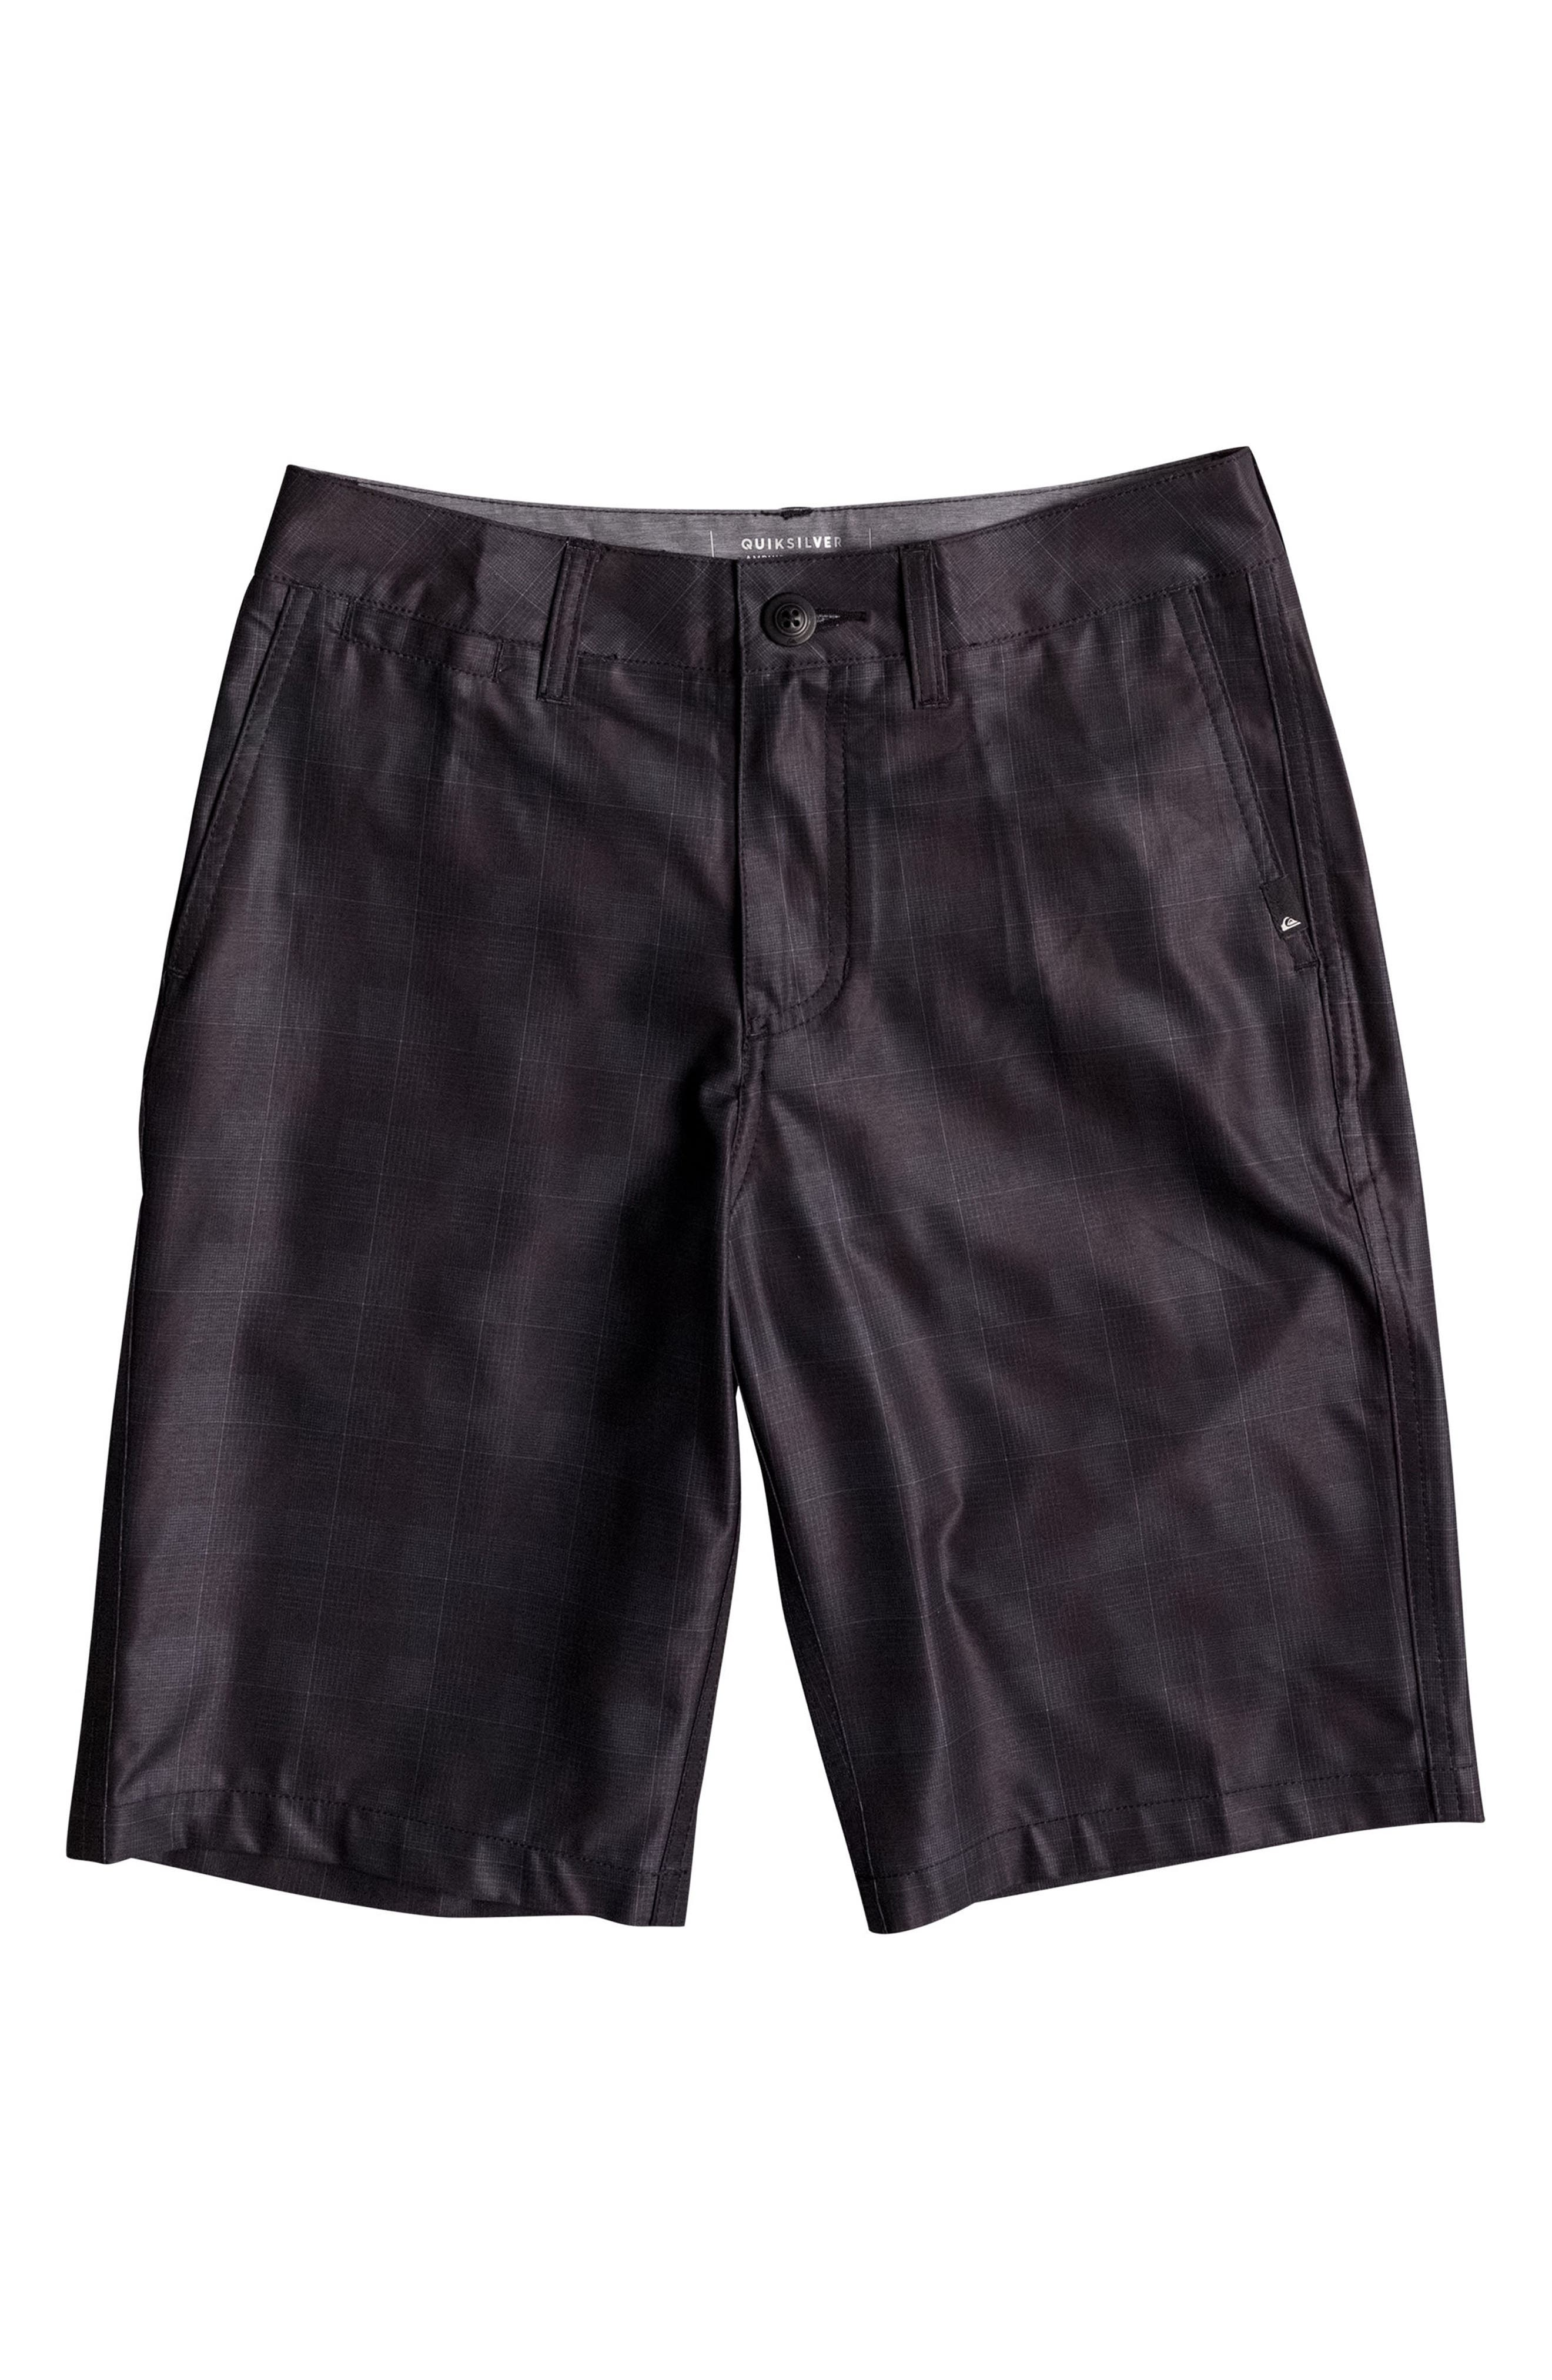 Quiksilver Union Plaid Amphibian Hybrid Shorts (Big Boys)